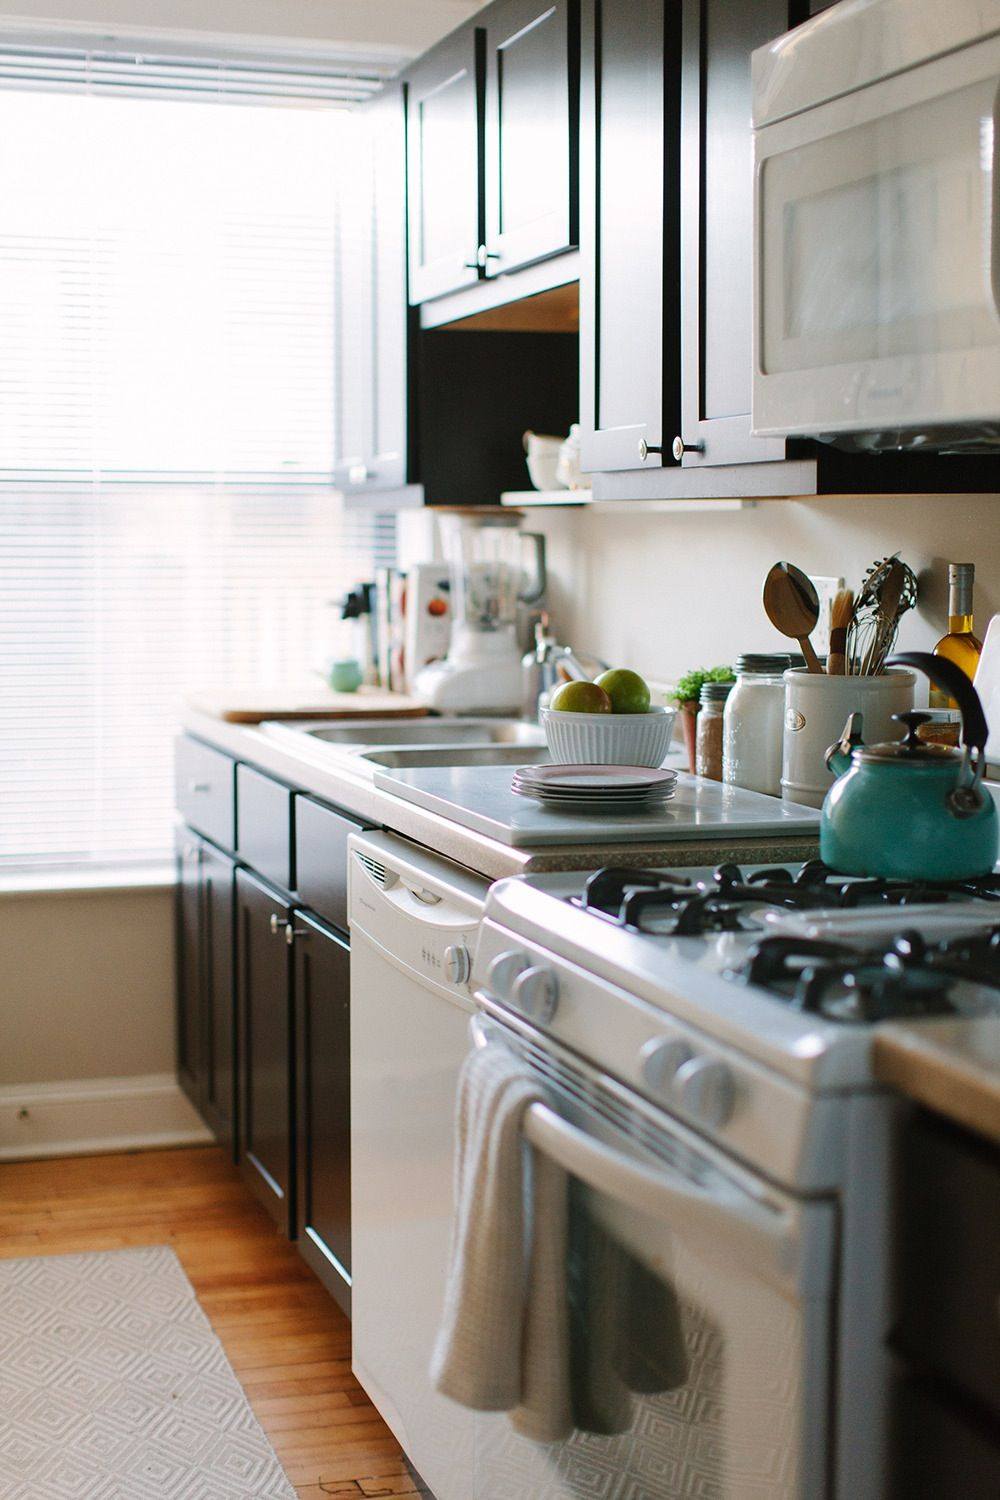 Great 10 Common Rental Kitchen Frustrations, And How To Fix Them